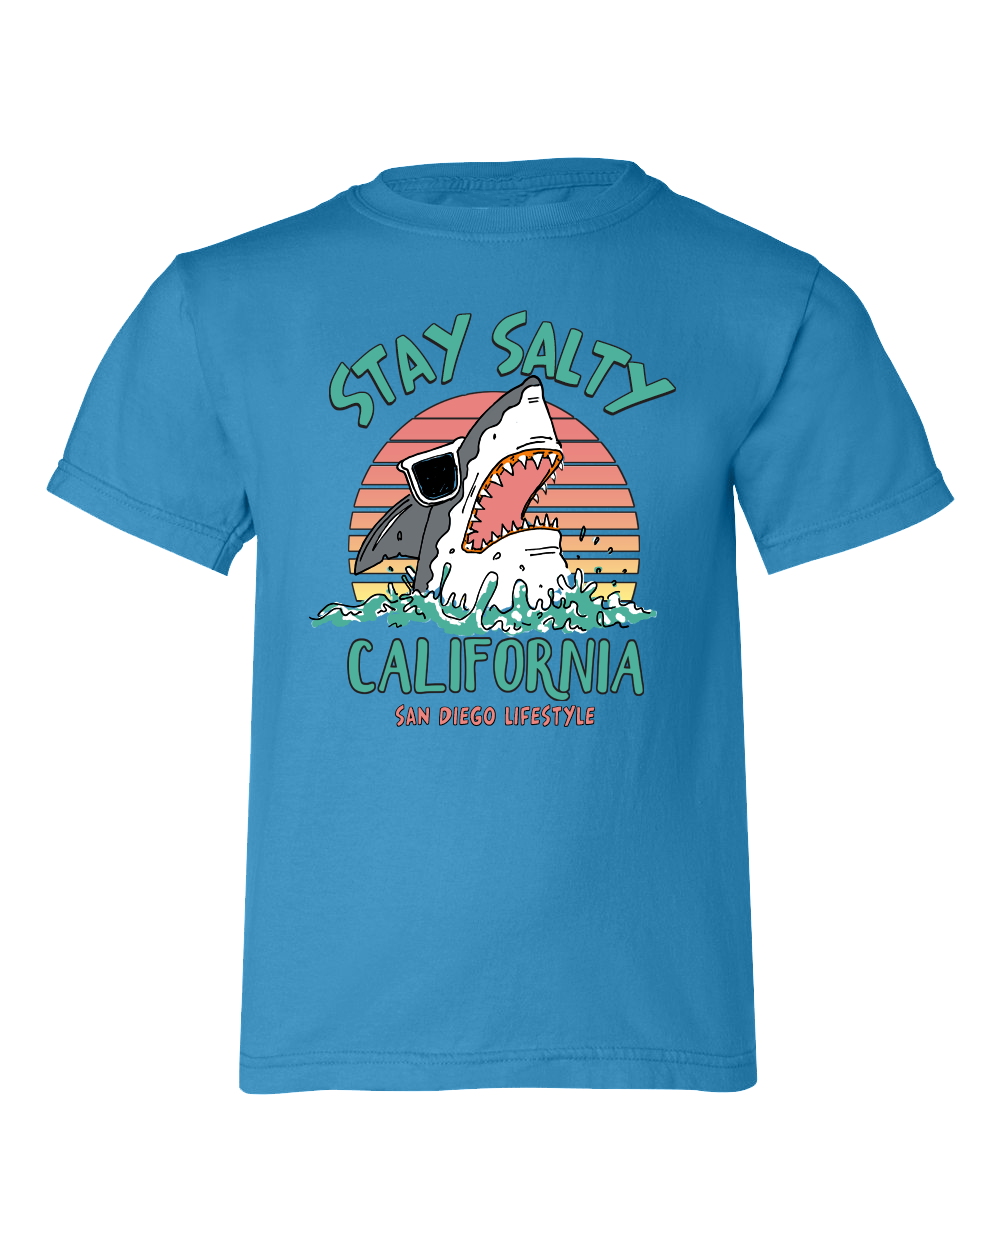 Boys graphic royal Caribbean Shark T-shirt. Great for back to school, summer, and any day wear for youth. Cool laid back Cali Graphic Design by local San Diego, California Artist. Design, Printed, and Sold by San Diego Trading Co.